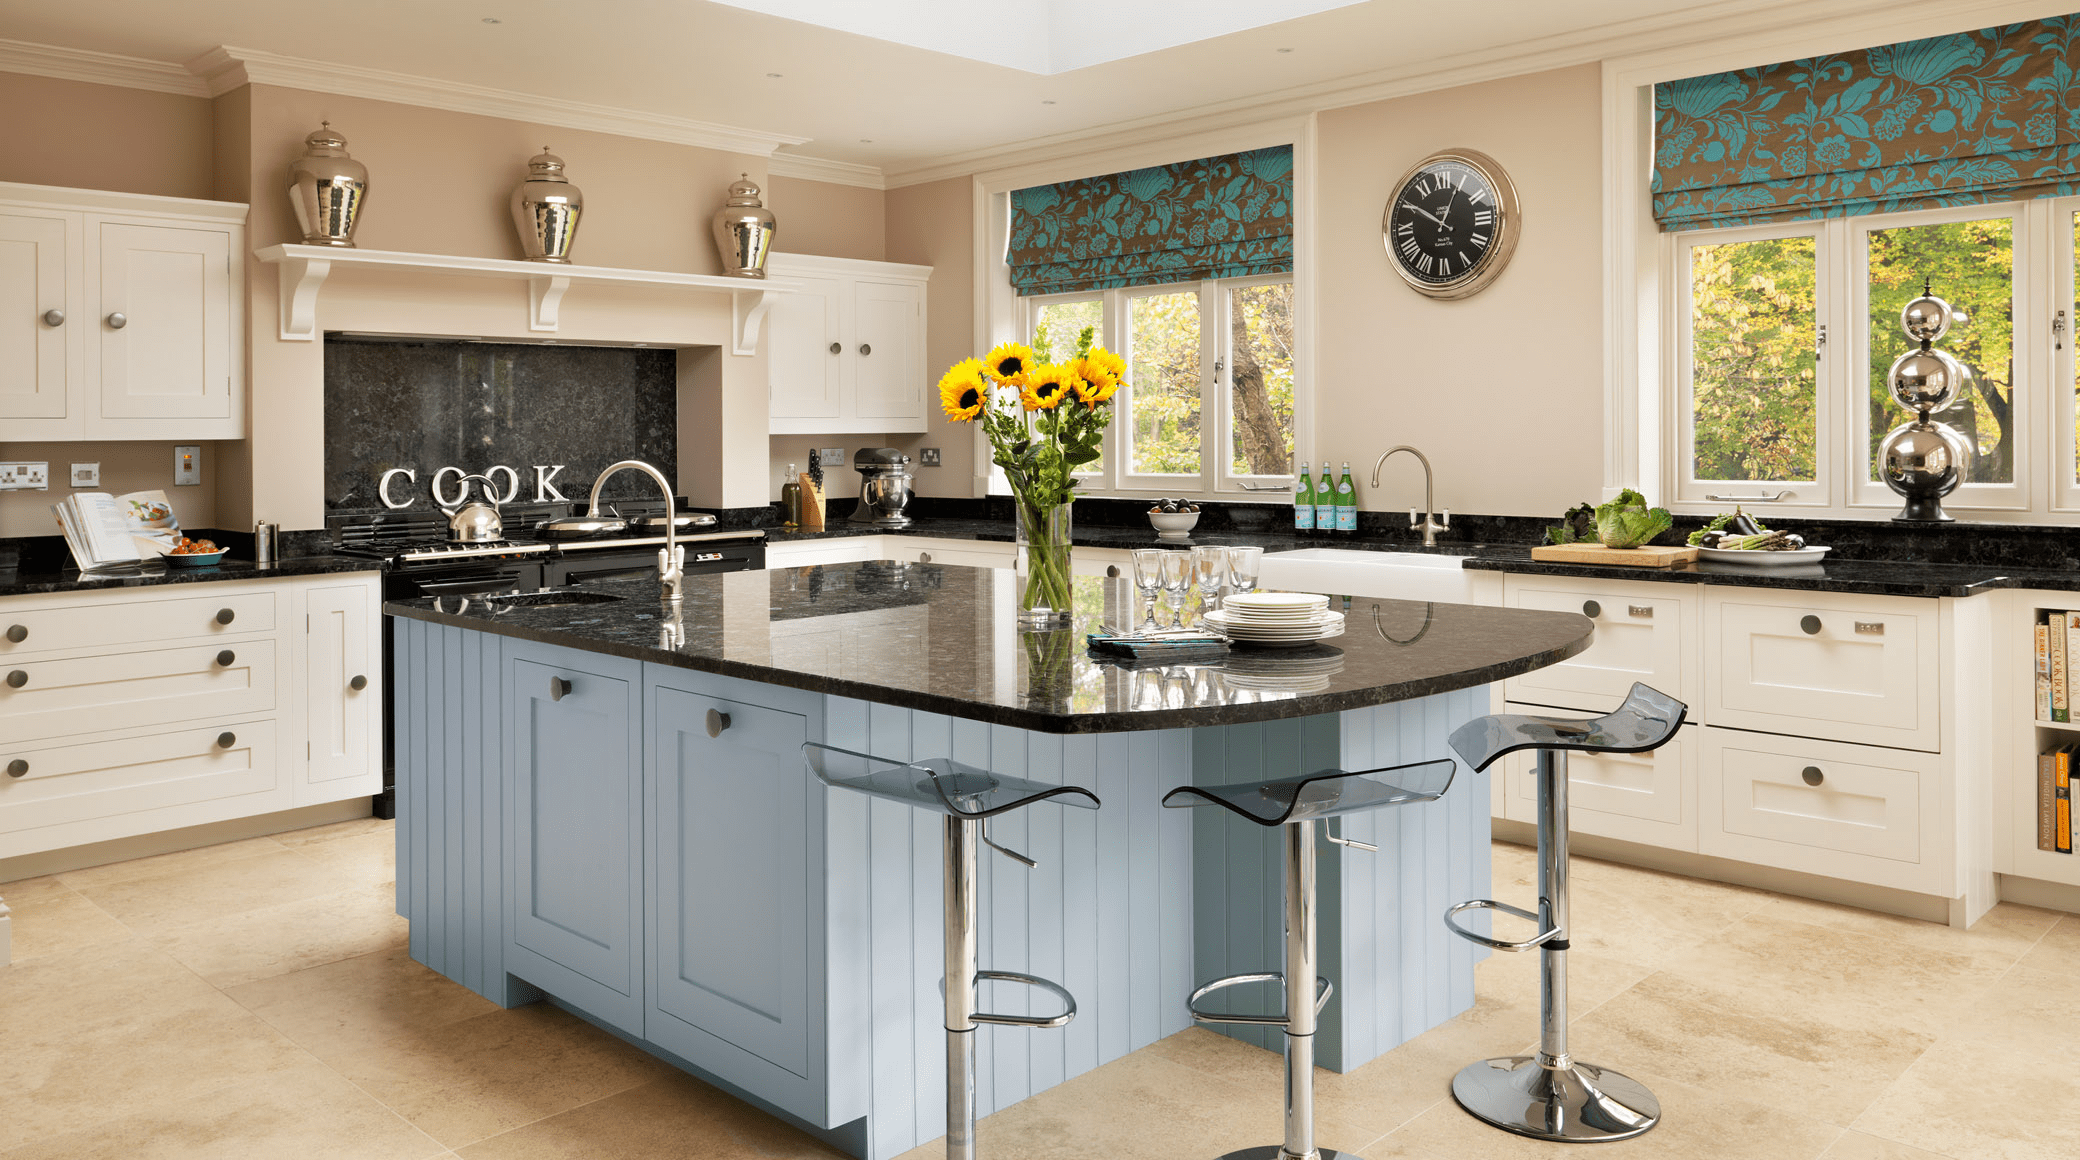 Kitchens - Modern,Tradditional & Shaker Designs in Slough ... on Images Of Modern Kitchens  id=62255